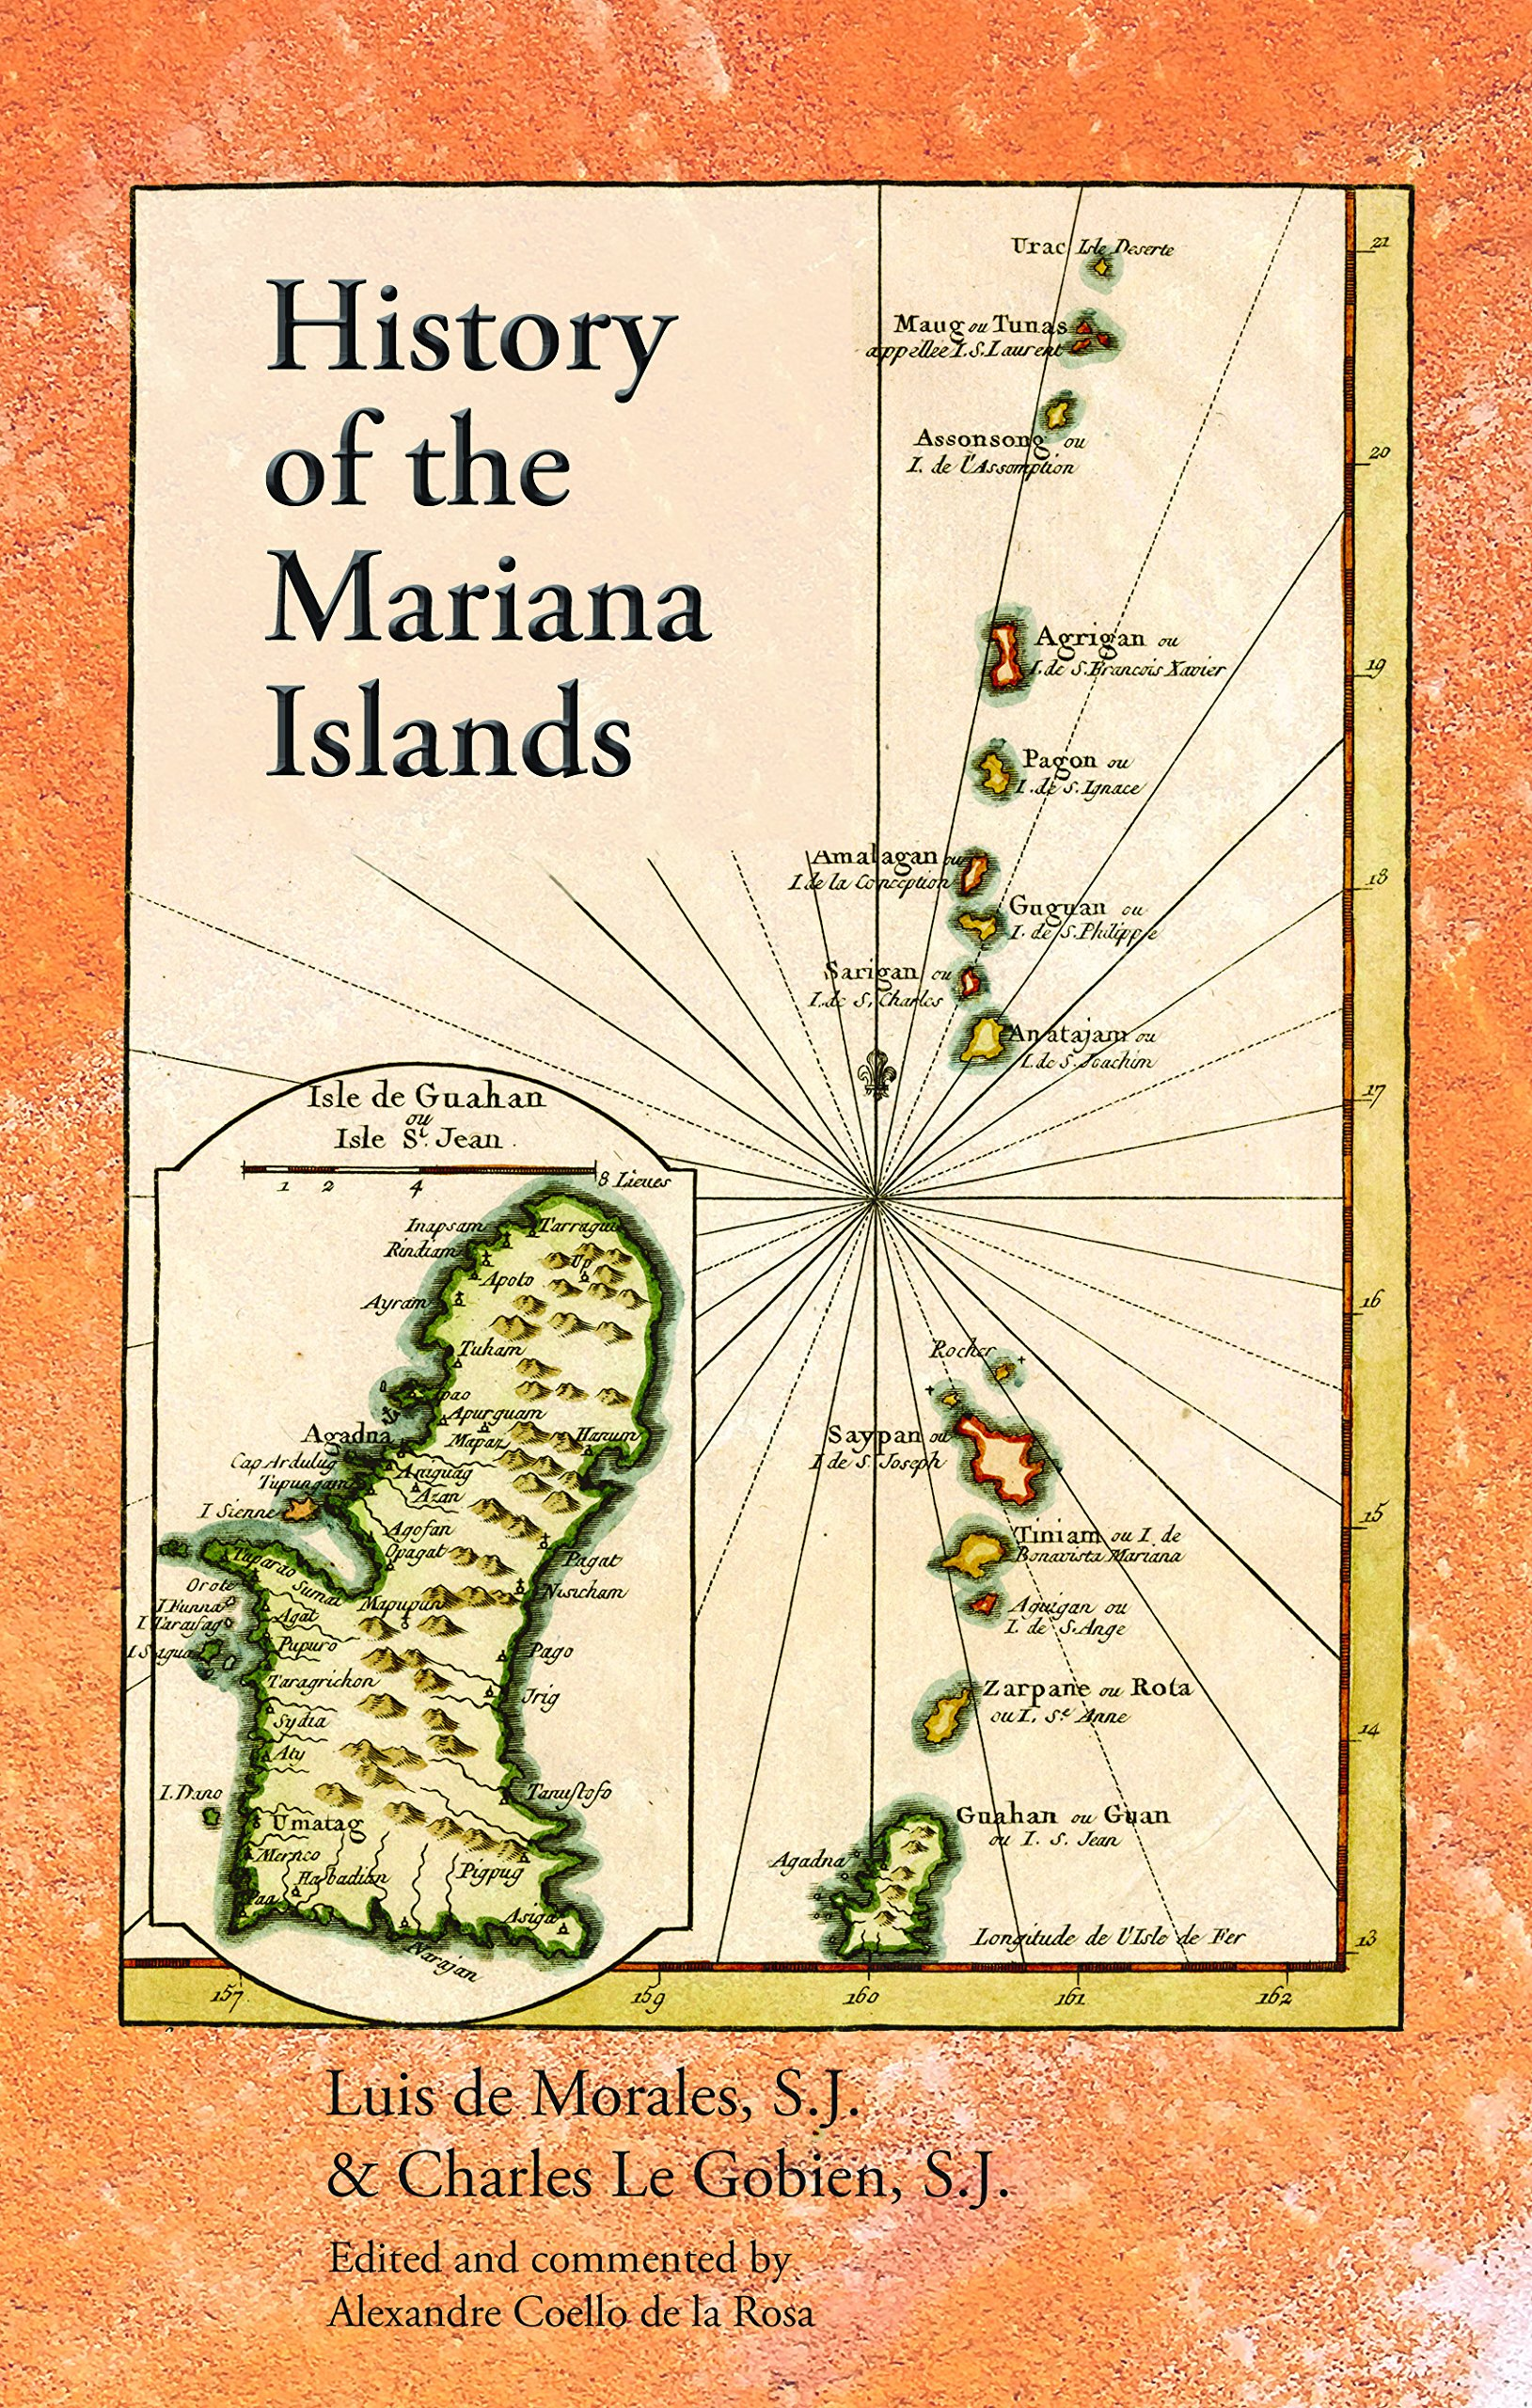 HISTORY OF THE MARIANA ISLANDS